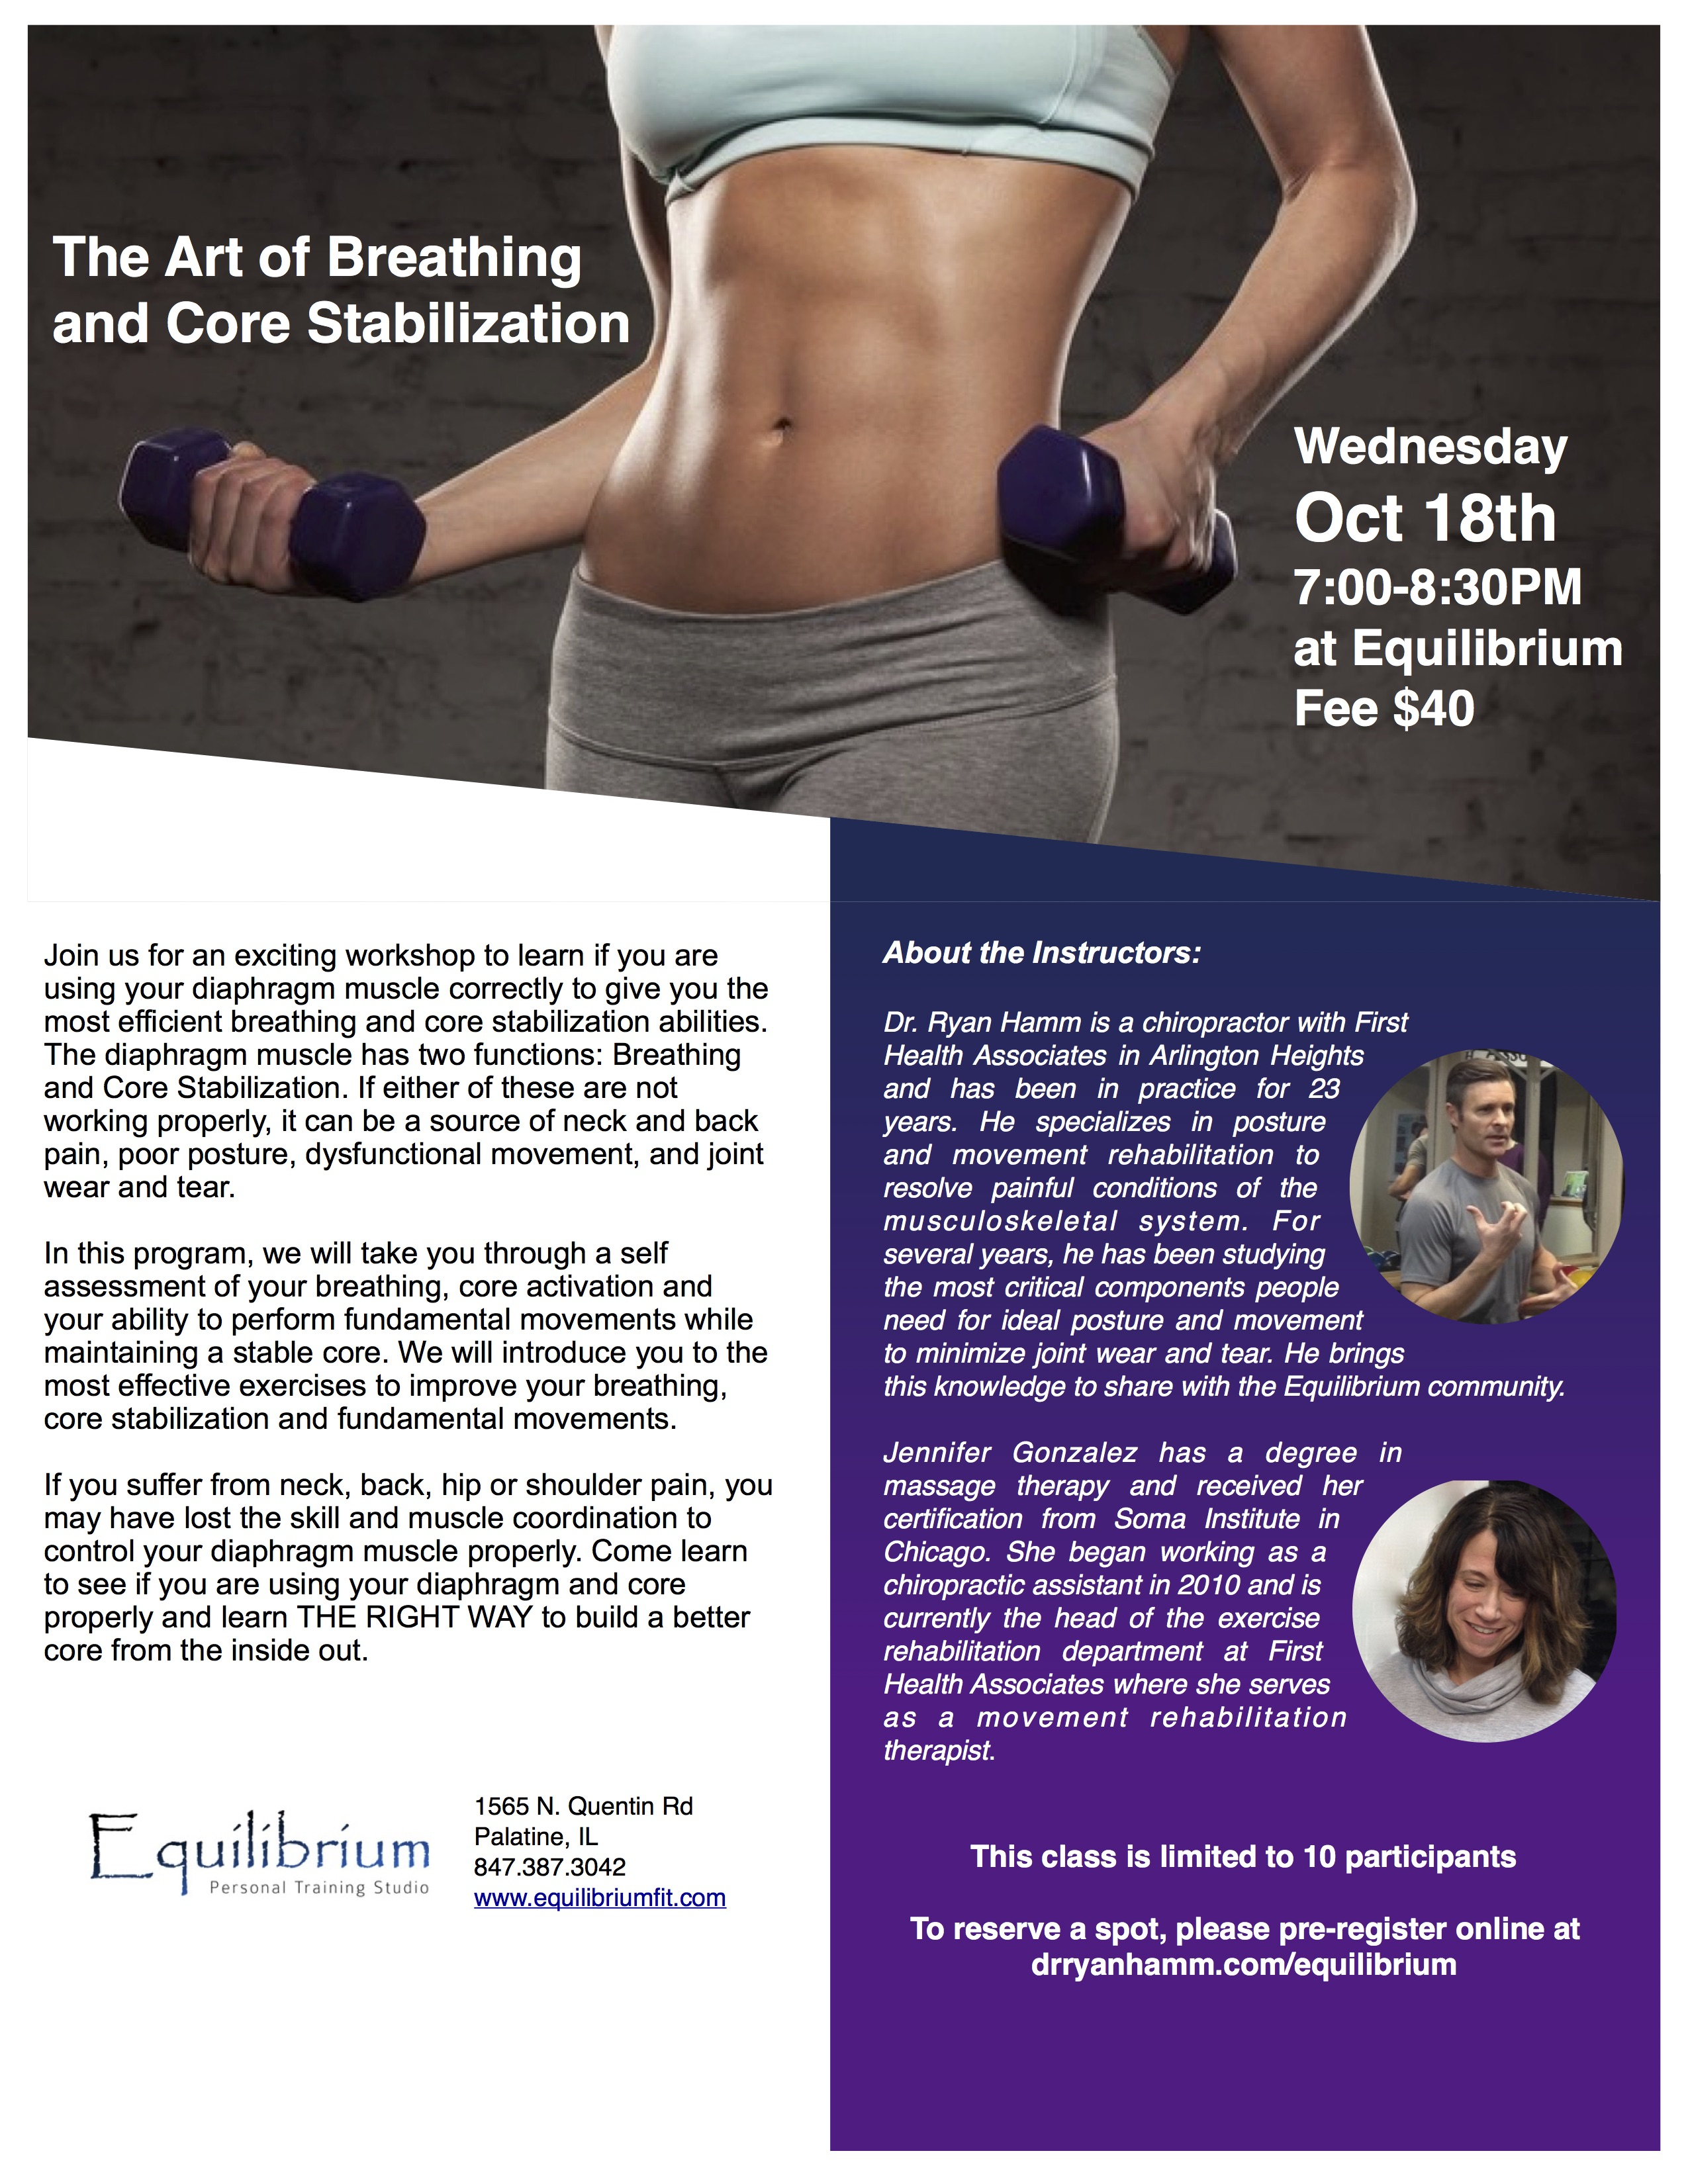 Art of Breathing and Core Stabilization Workshop at